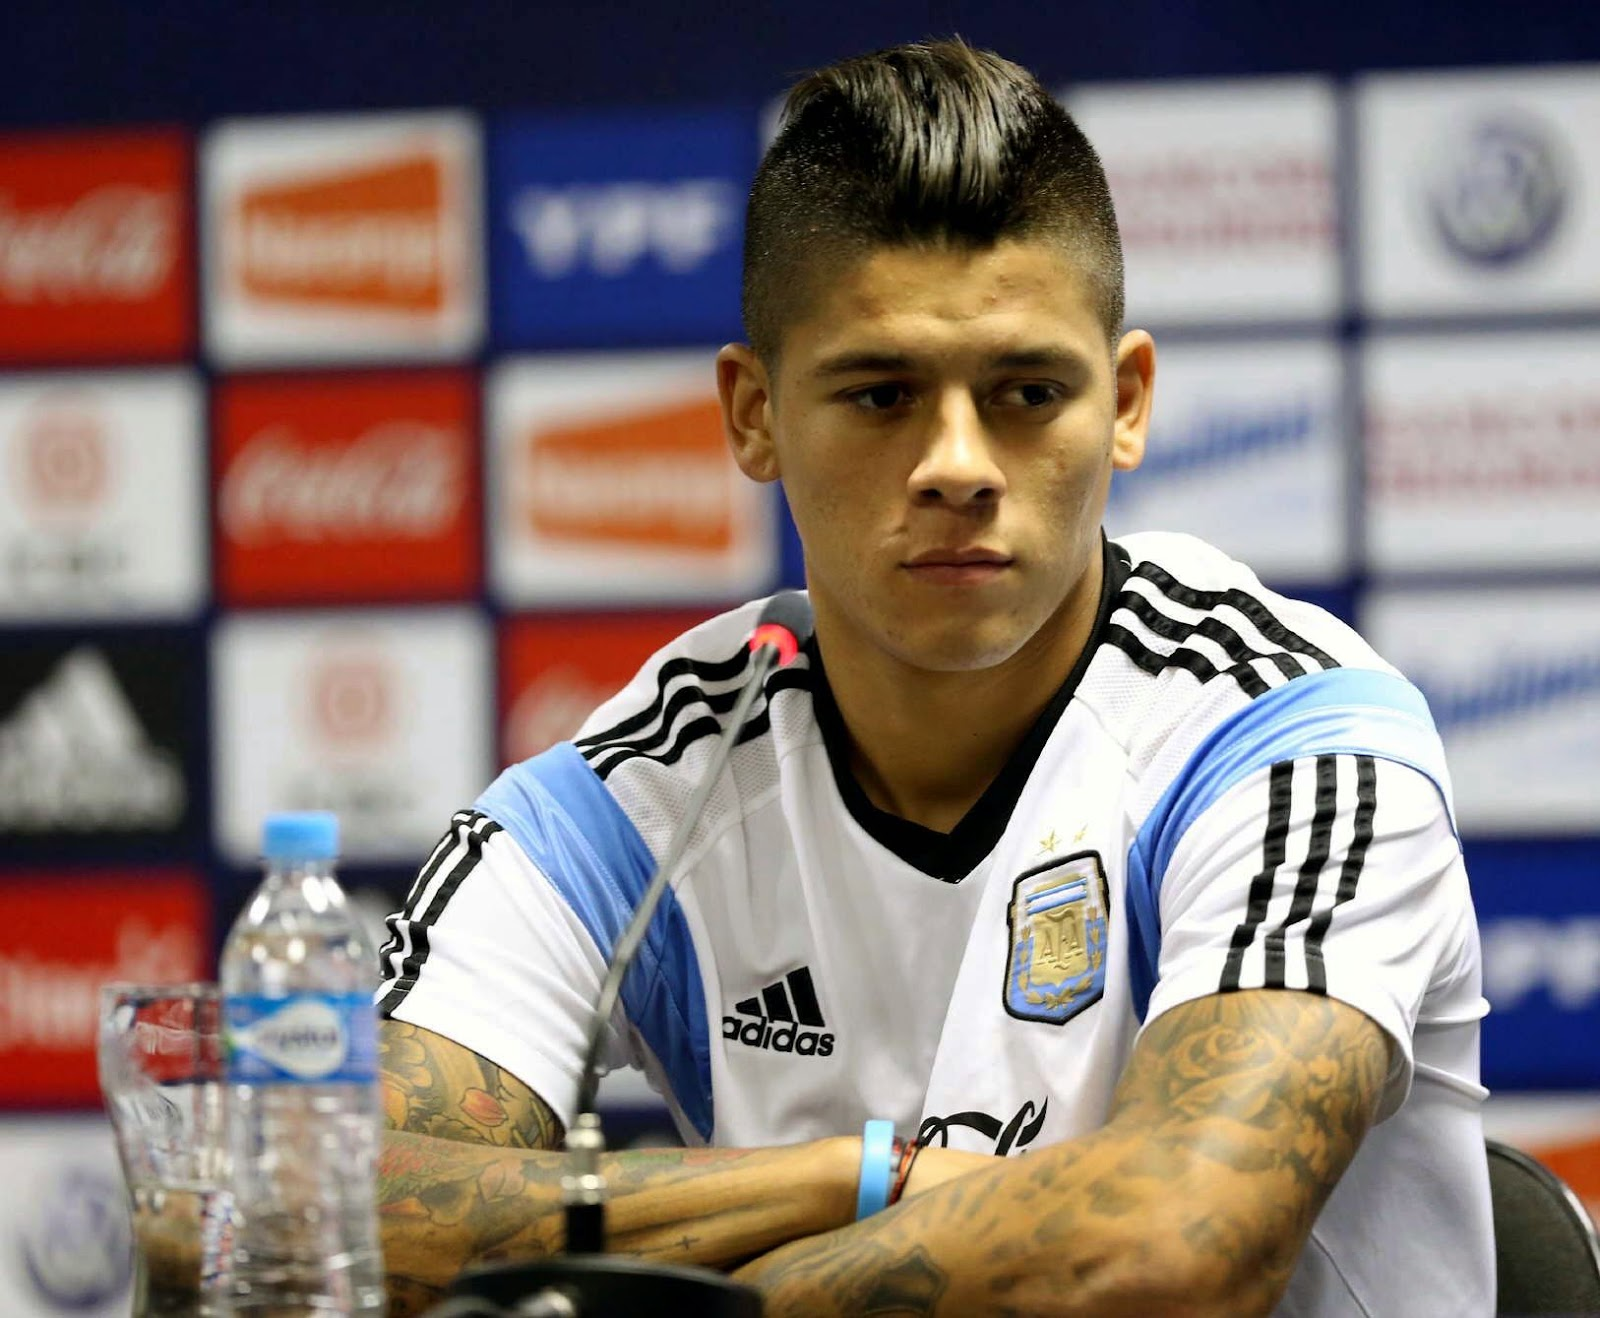 Marcos Rojo Tattoo